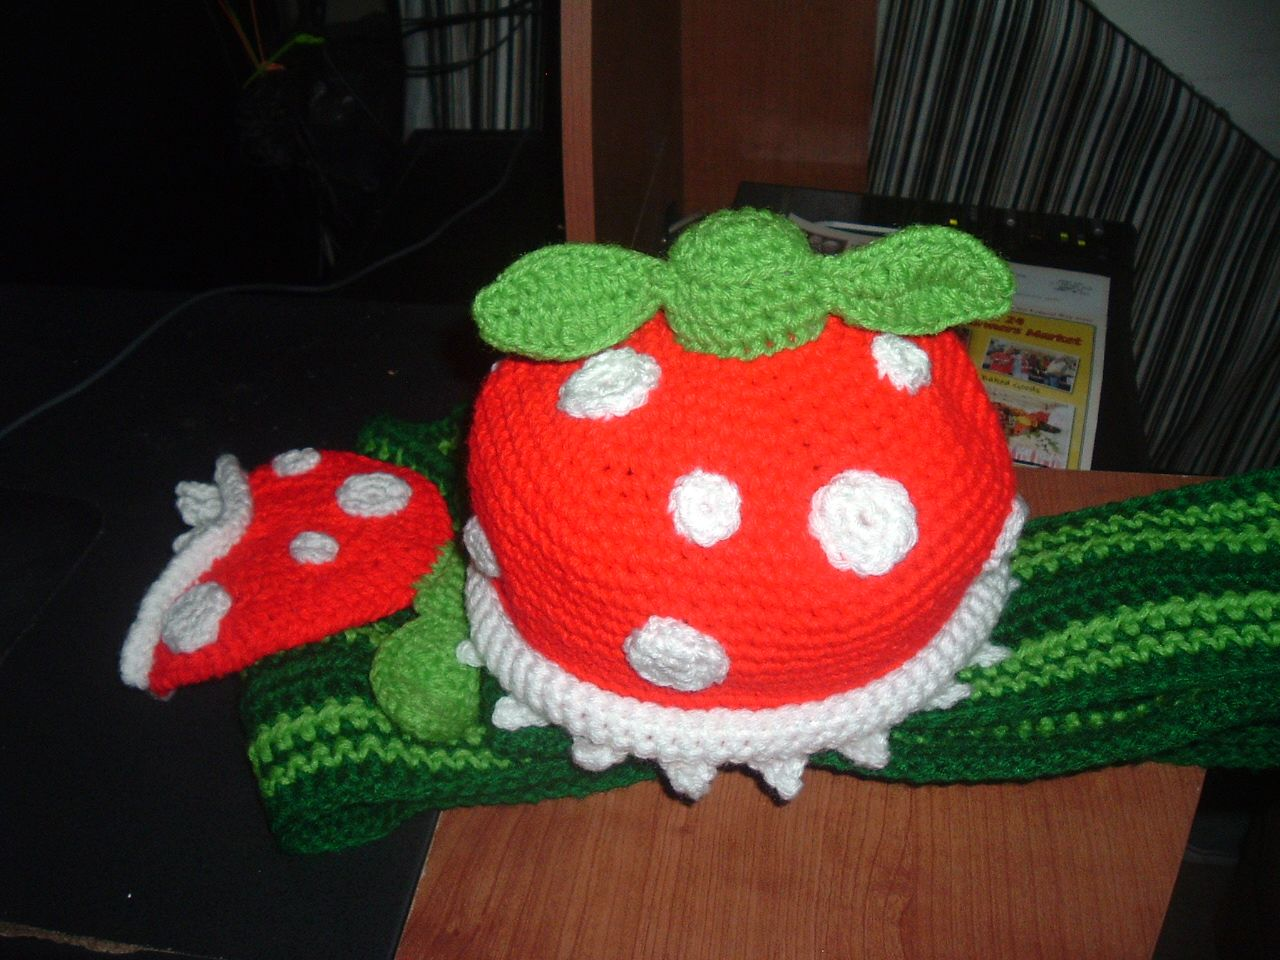 Nanette Crochet: Piranha Plant scarf and hat set with pattern